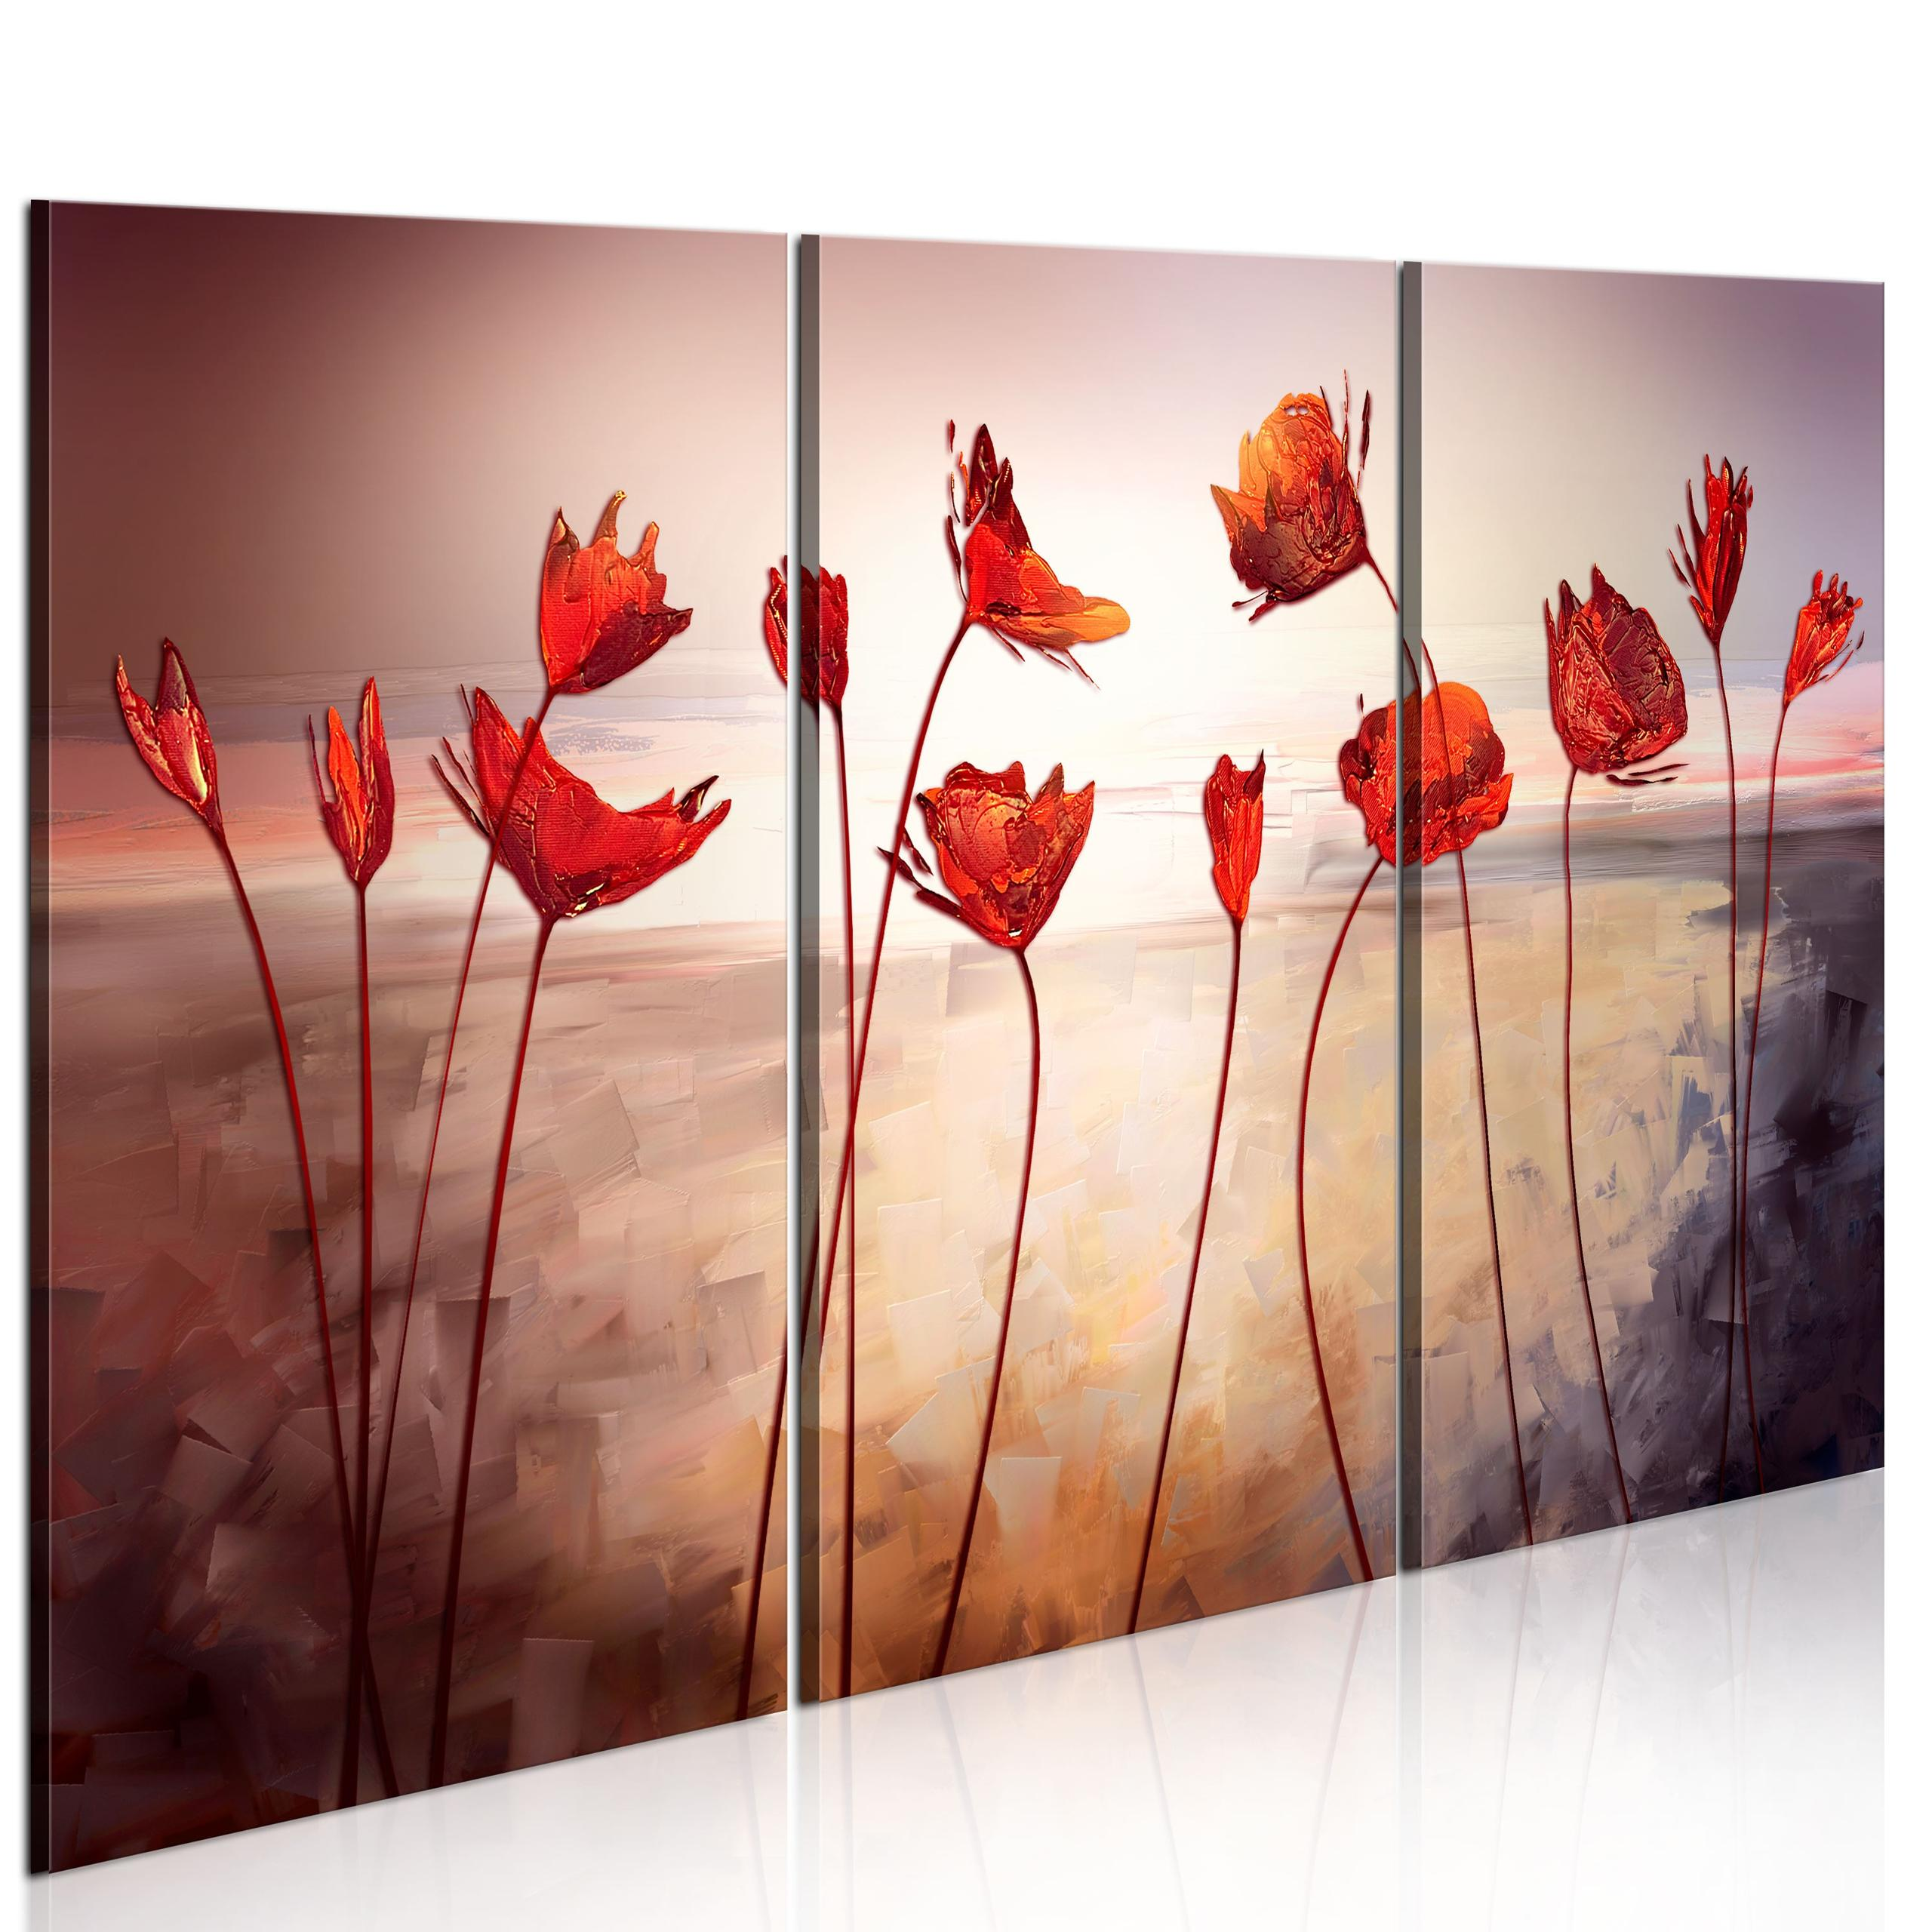 Quadro - Bright Red Poppies 60X40Cm Erroi